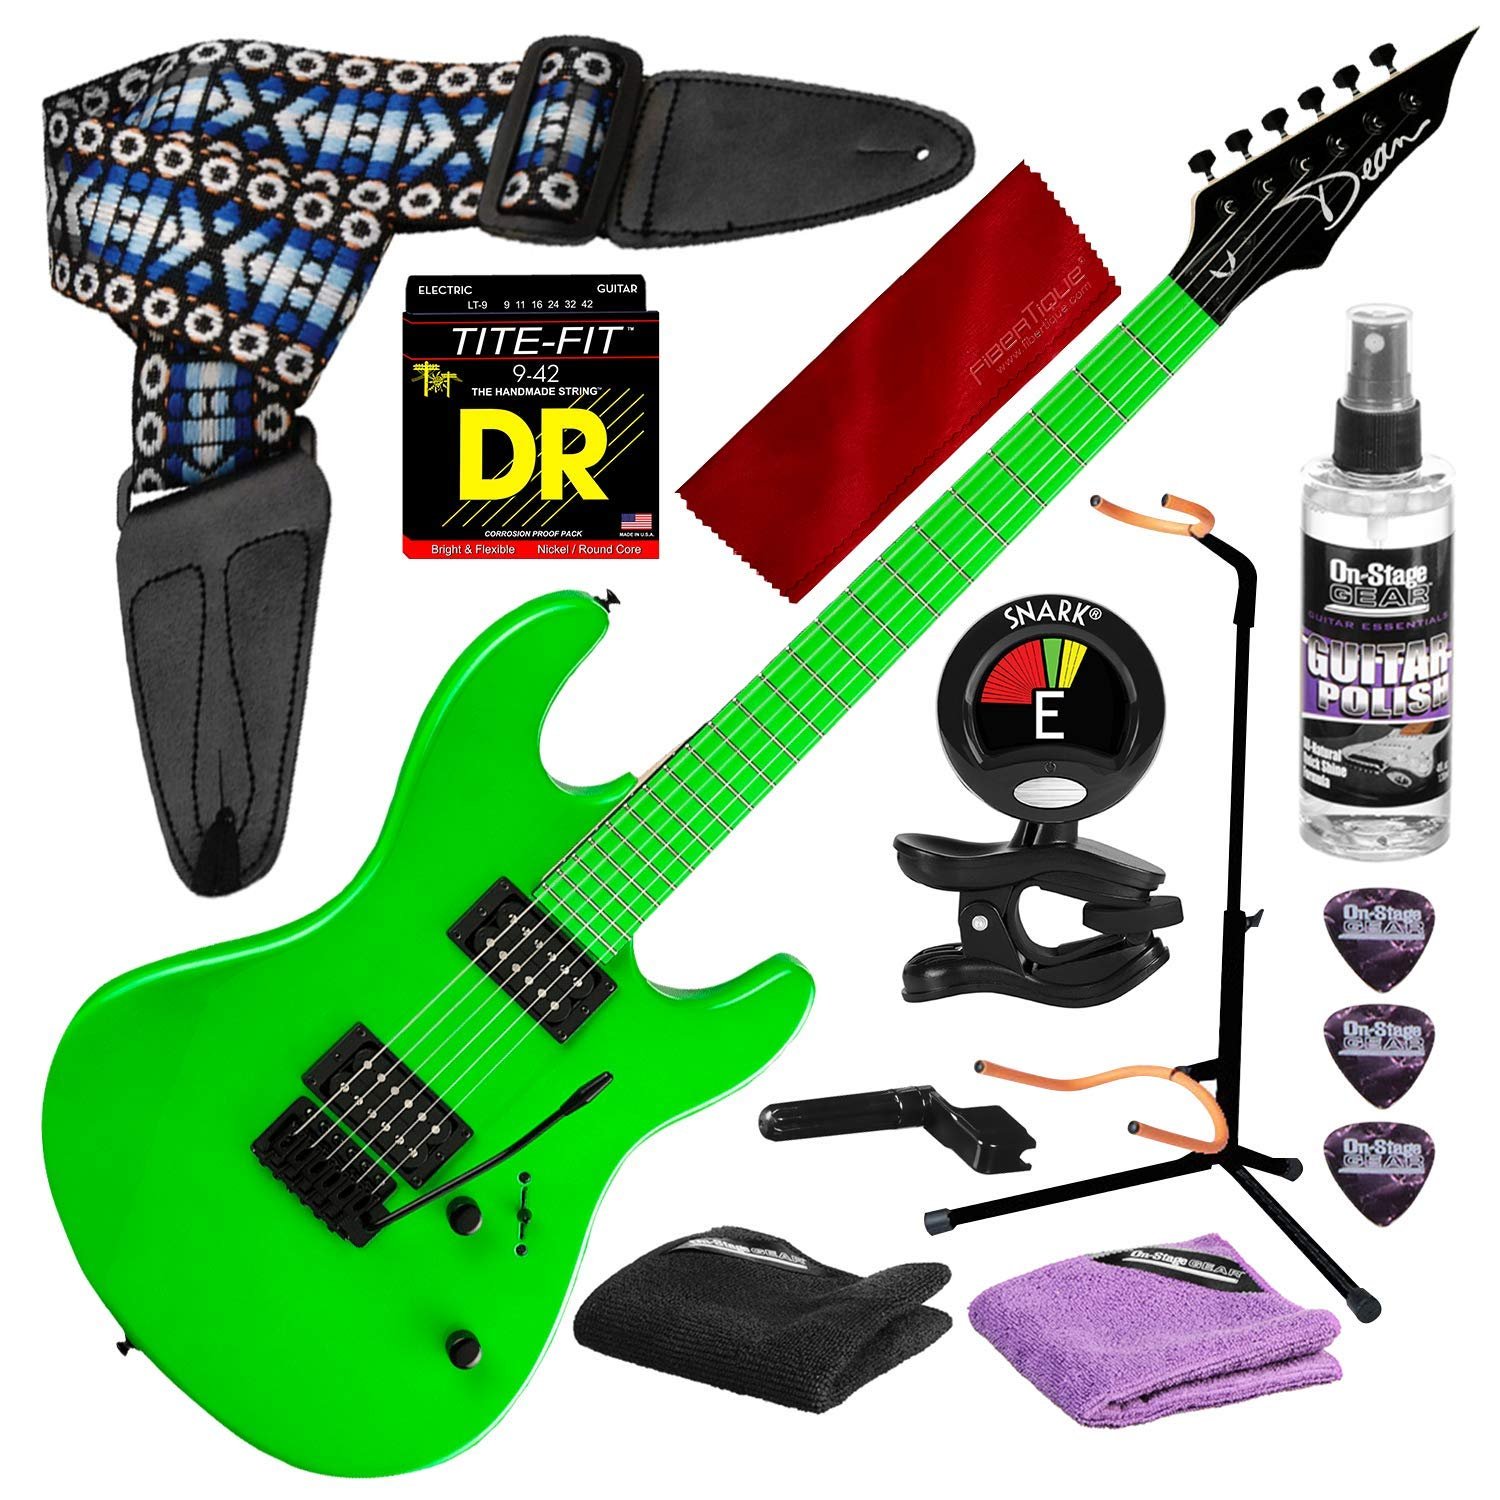 Cheap Dean Custom Zone 2 HB Solid Body Electric Guitar Fluorescent Green with Guitar Stand & Deluxe Accessory Bundle Black Friday & Cyber Monday 2019